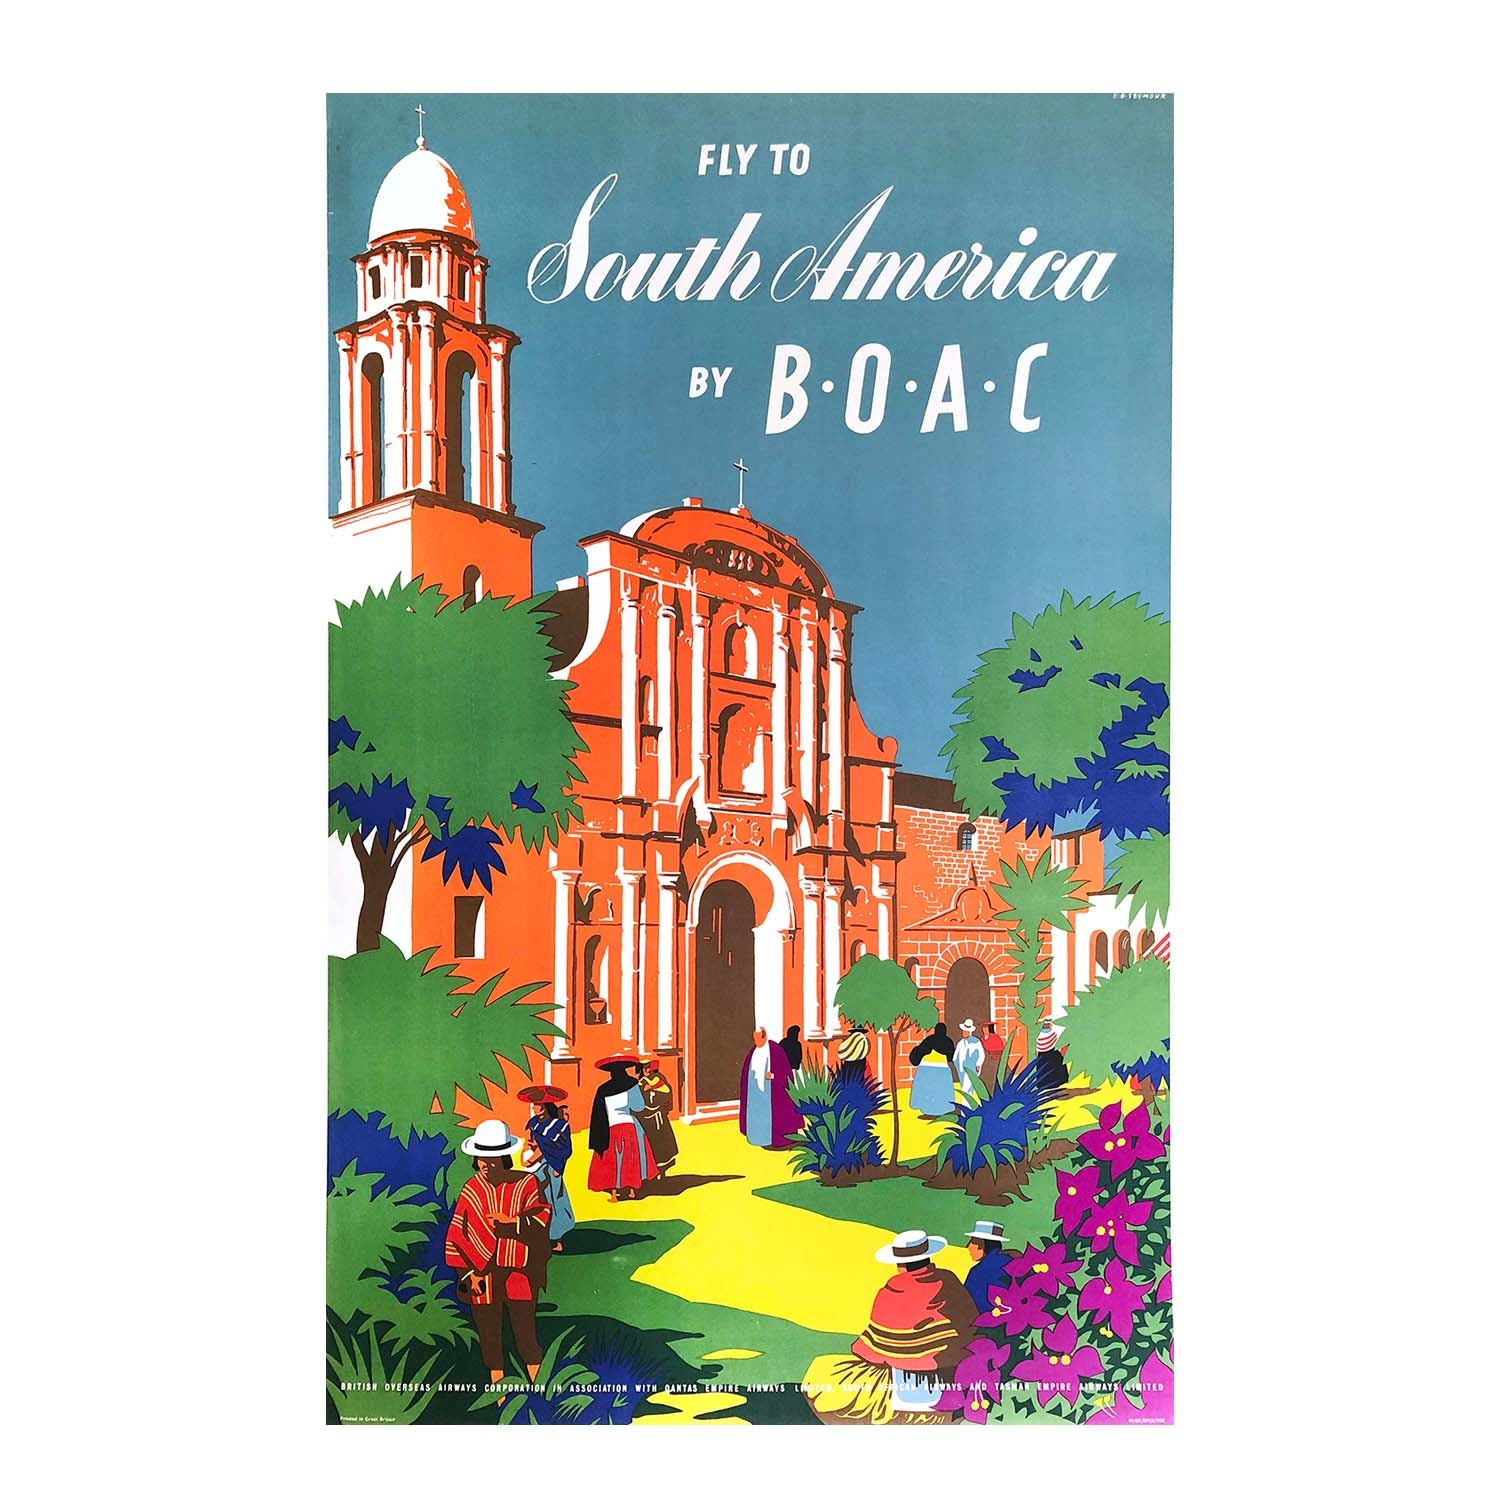 An original, vintage, mid-century airline poster for flights to South America, published by the British Overseas Airline Corporation